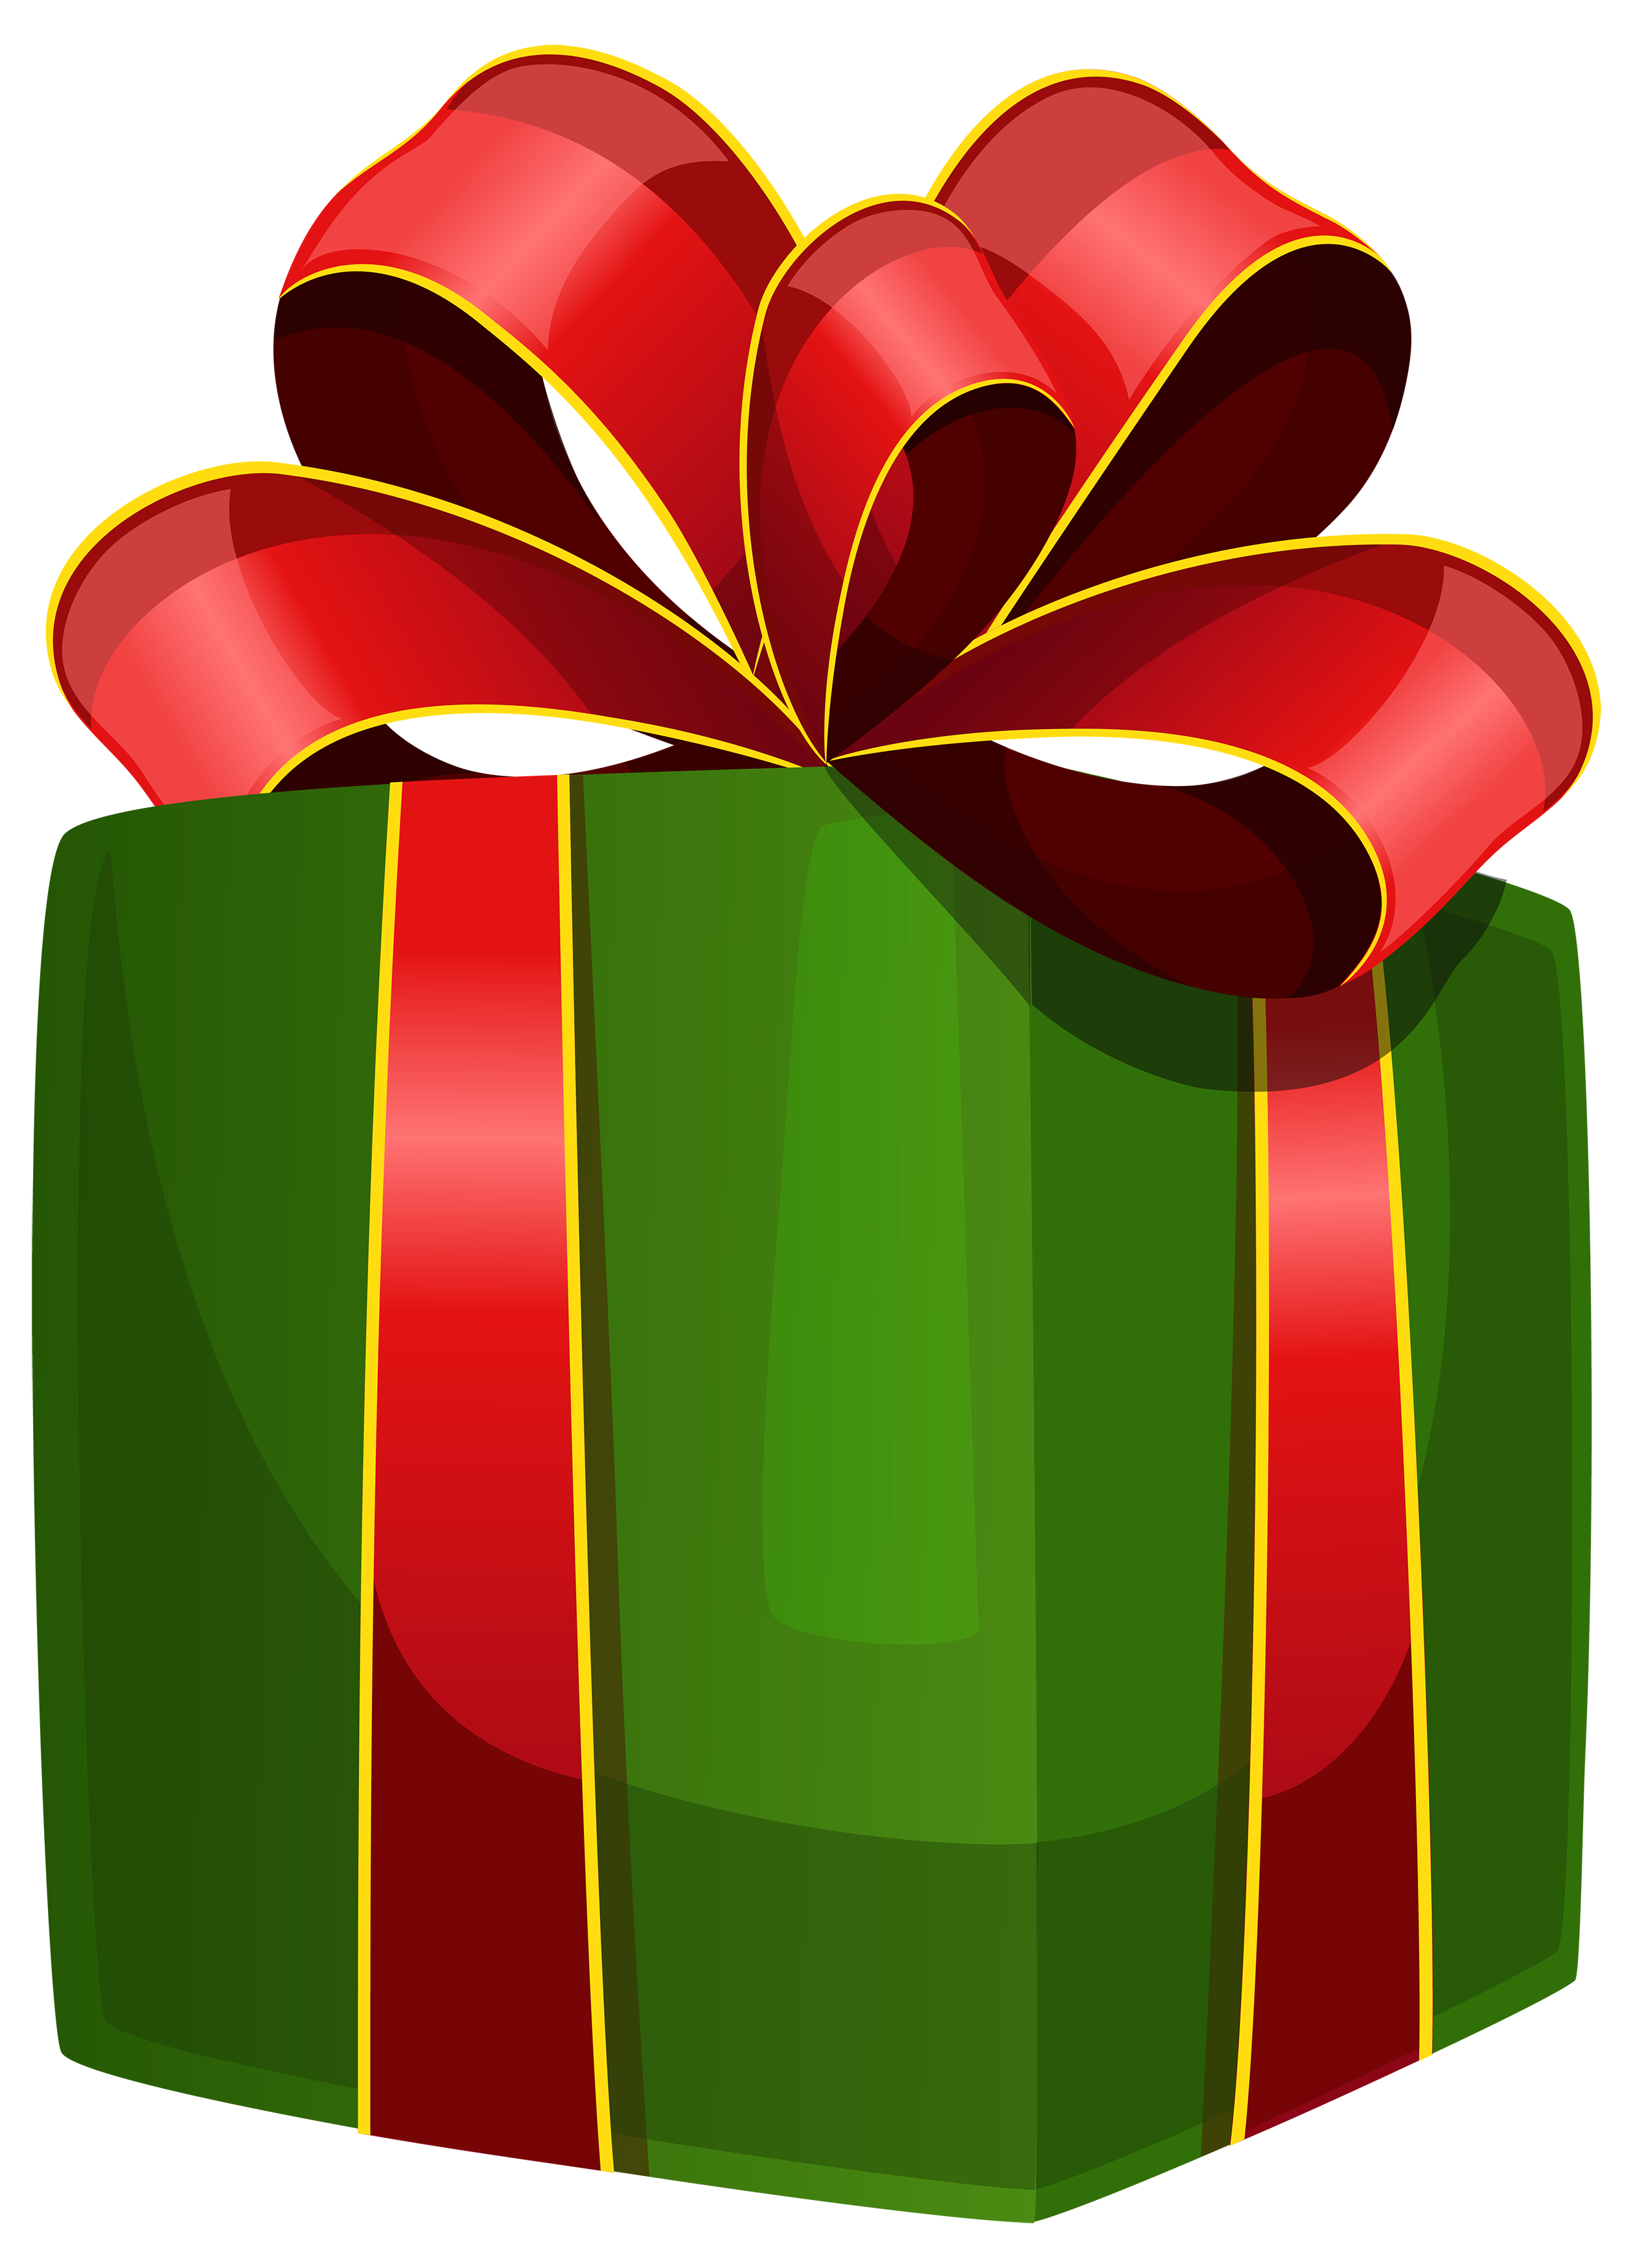 Boxes clipart gift. Green box png best